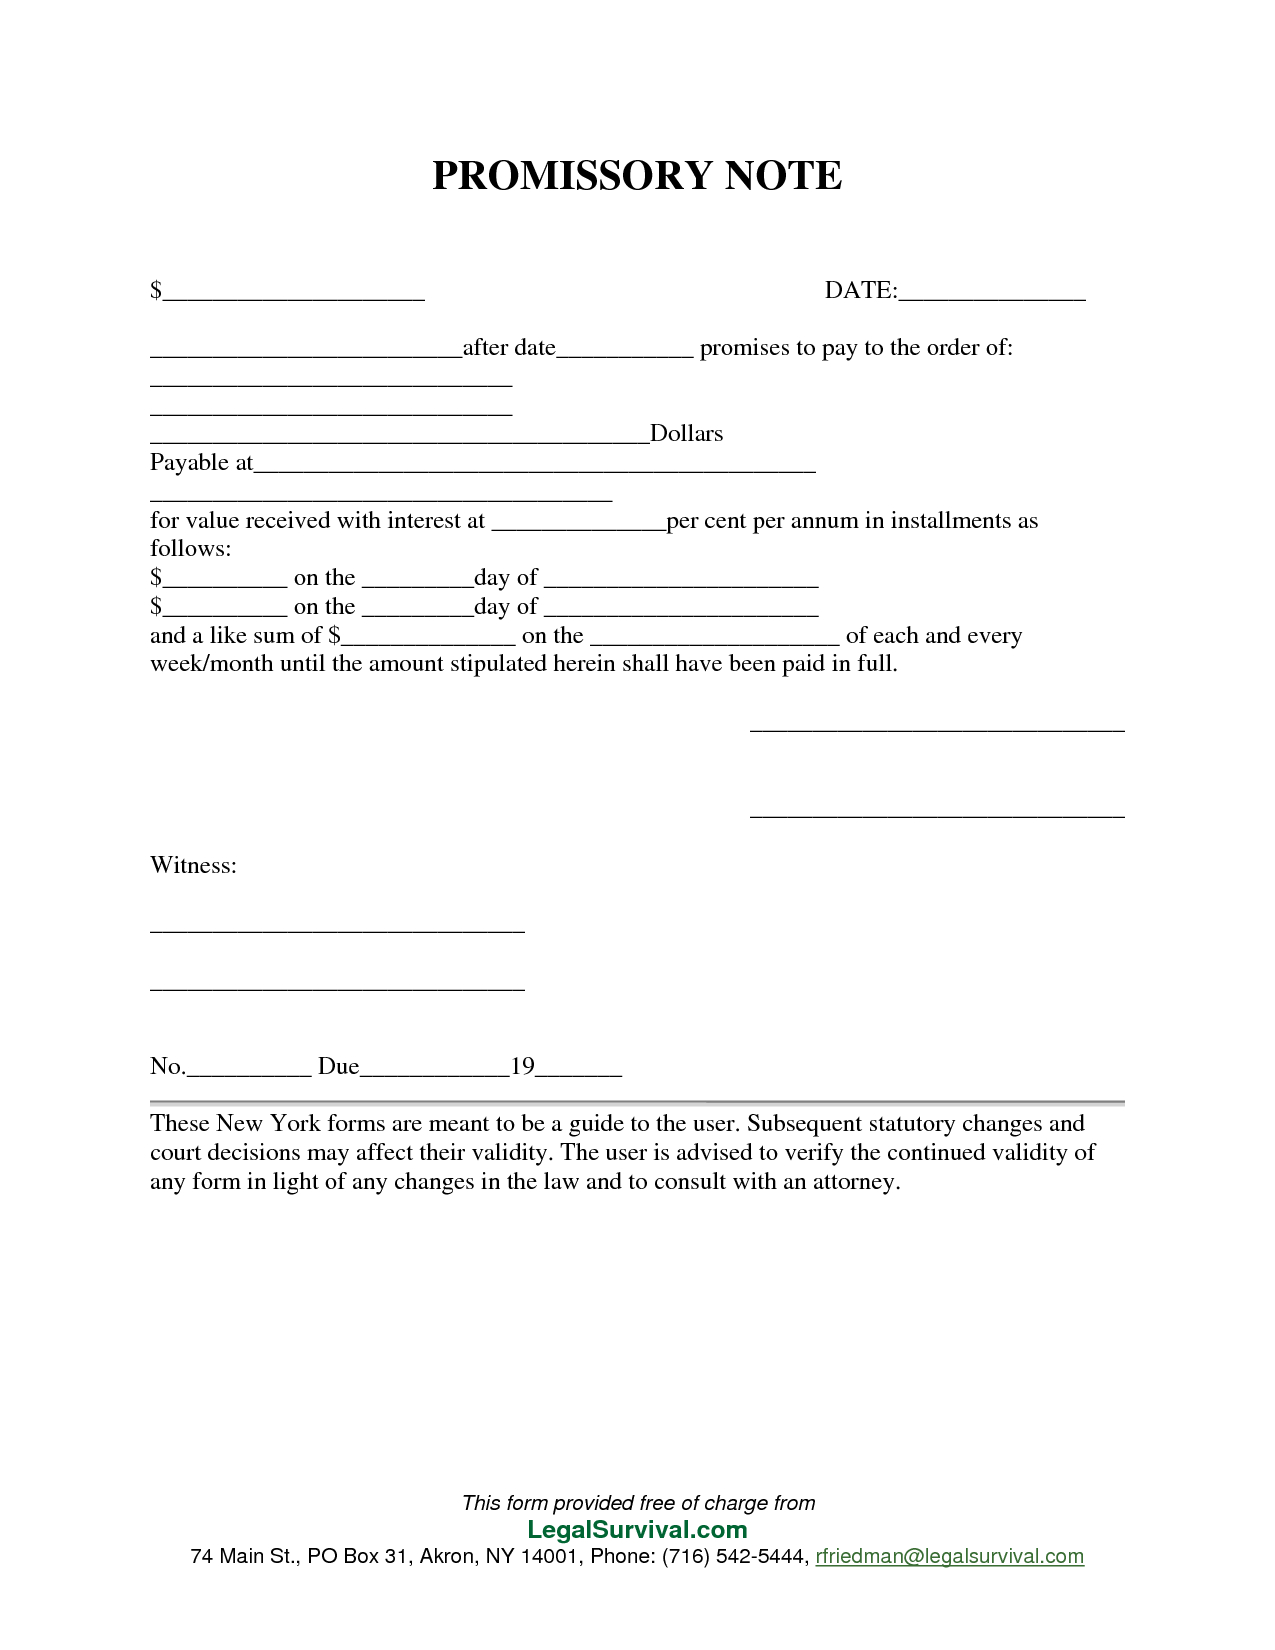 Permalink To Free Promissory Note Template   Templates, Printables - Free Printable Promissory Note